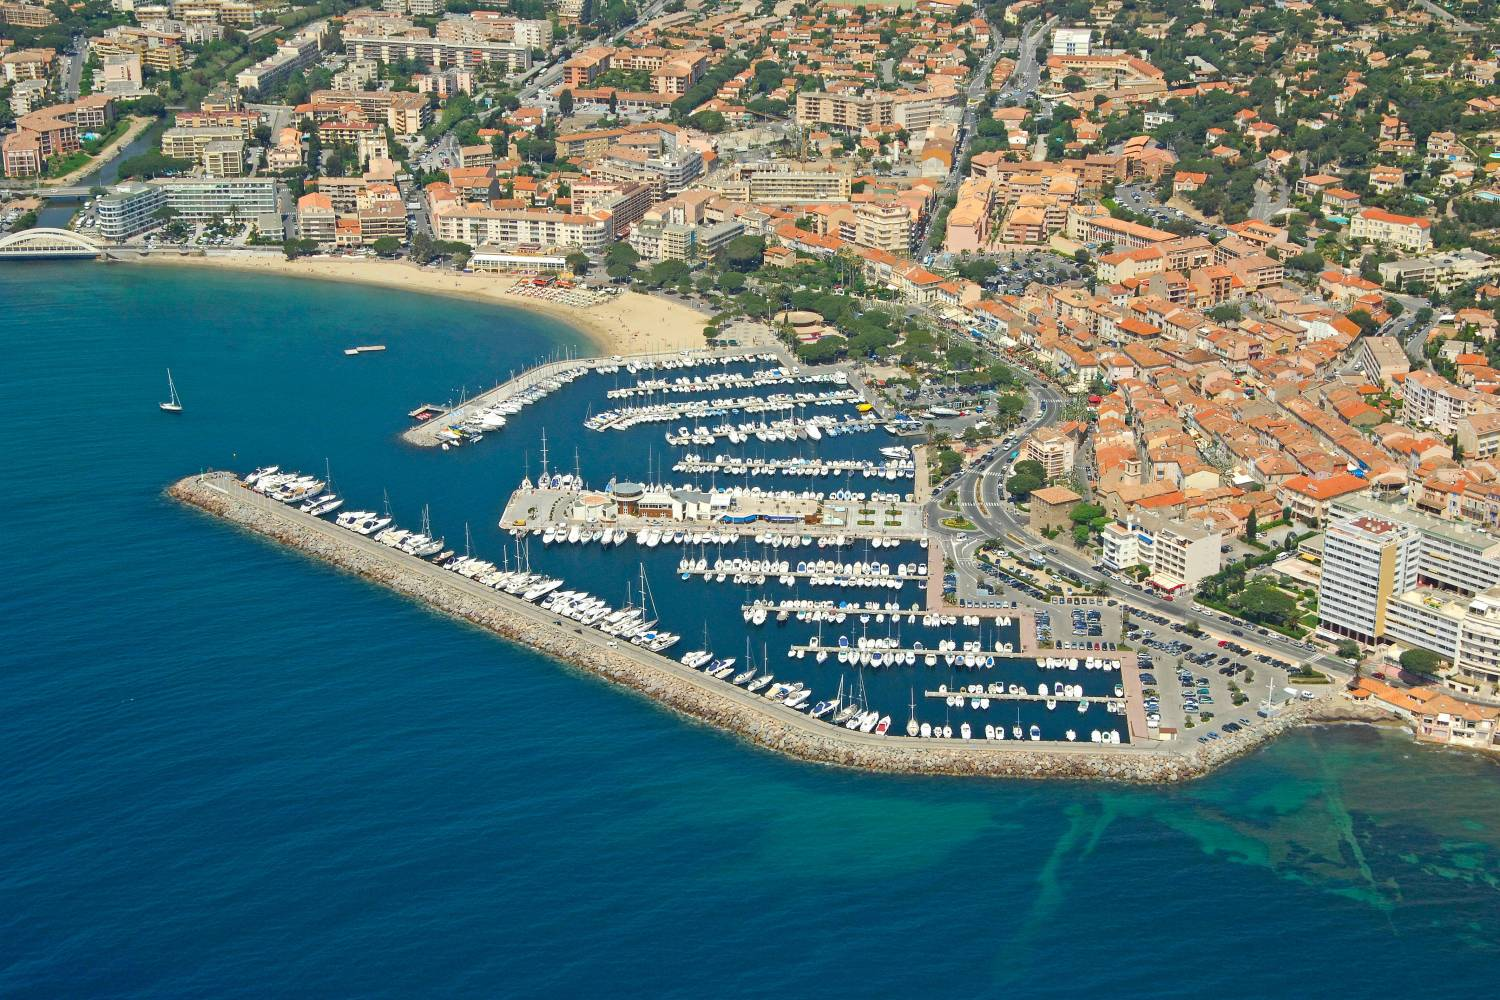 Enjoy a private chef after an amazing day in Sainte Maxime - Take a Chef